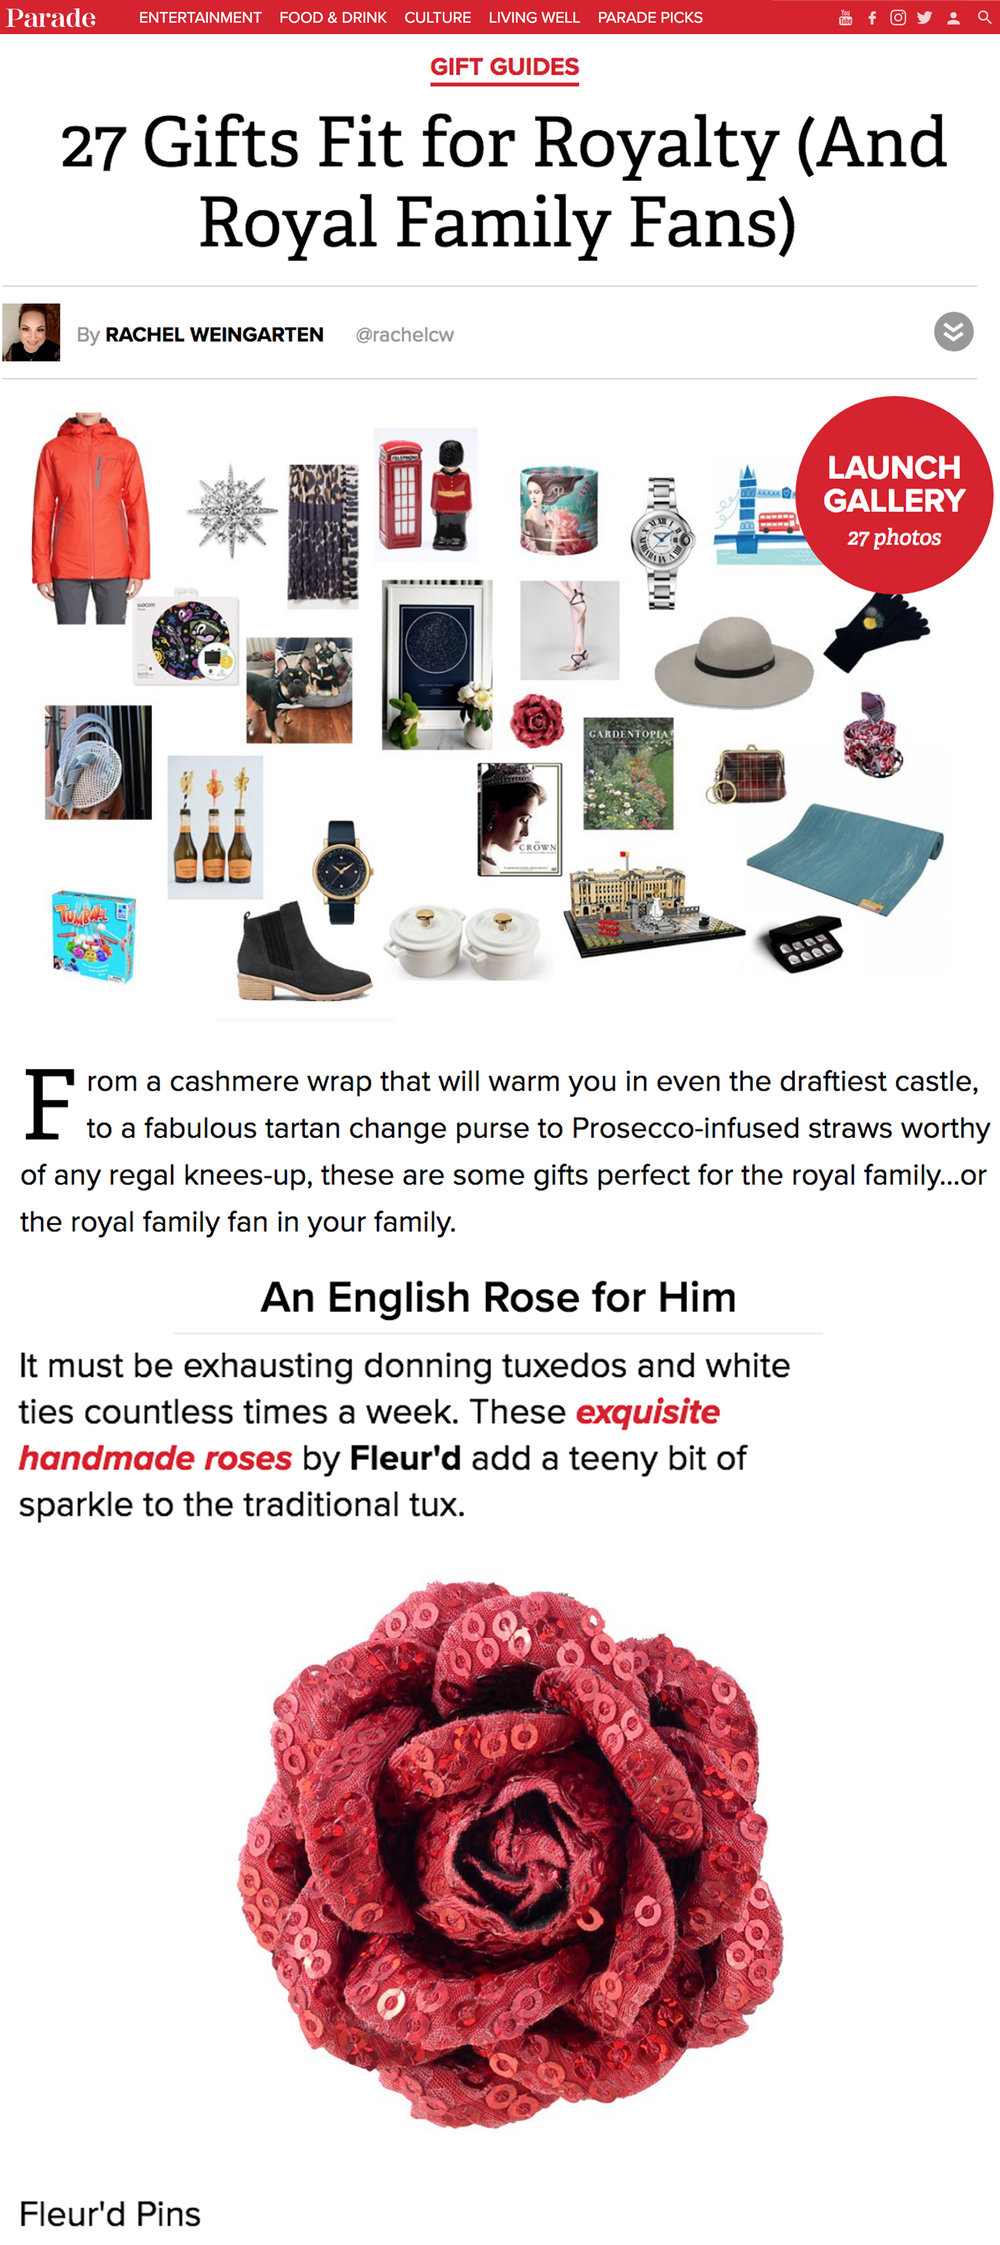 PARADE Magazine Gift Guide featuring Fleur'd Pins - January 2019.jpg